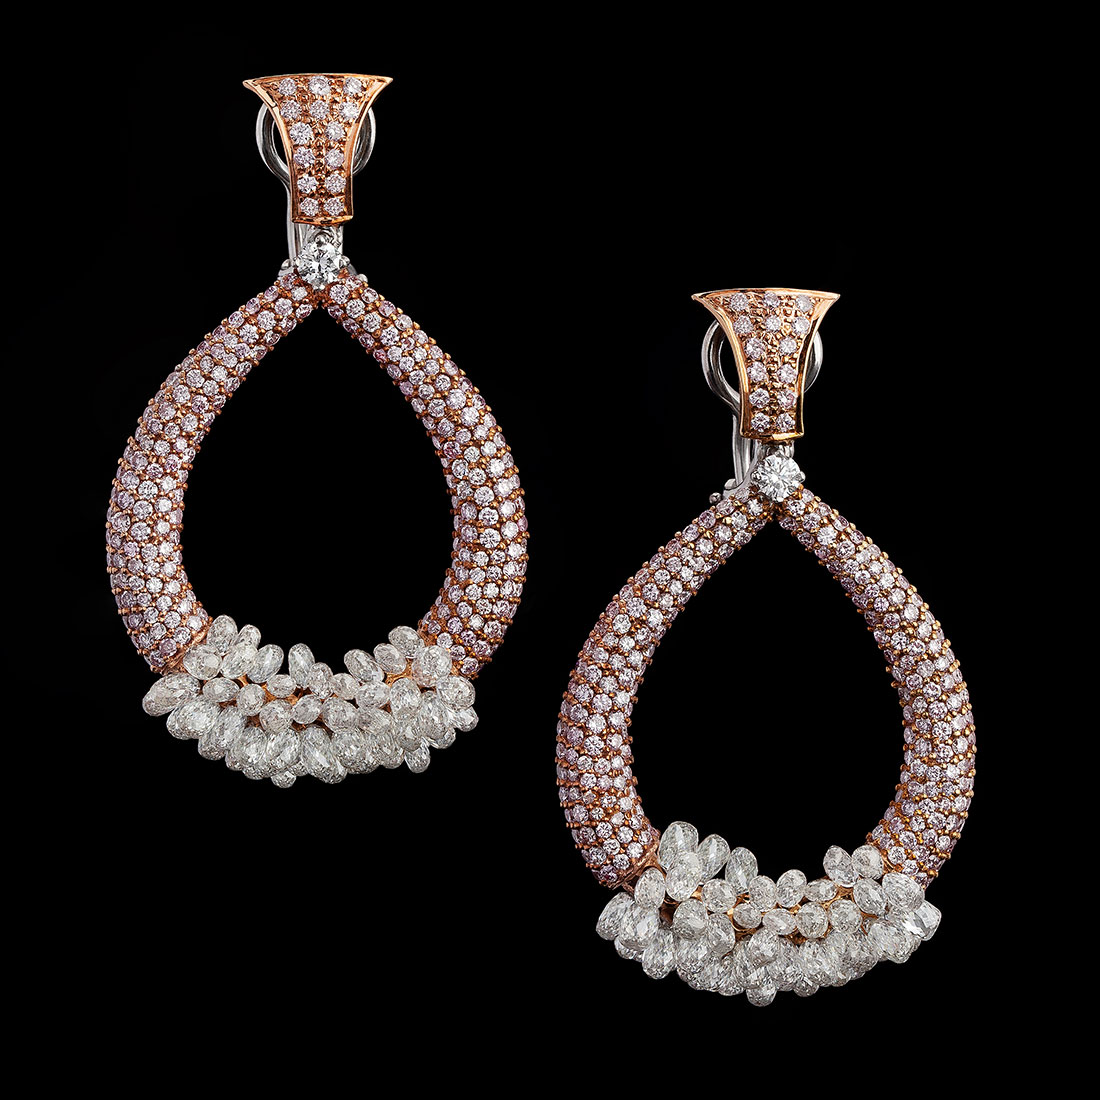 Pink Diamond and Briolette Earrings